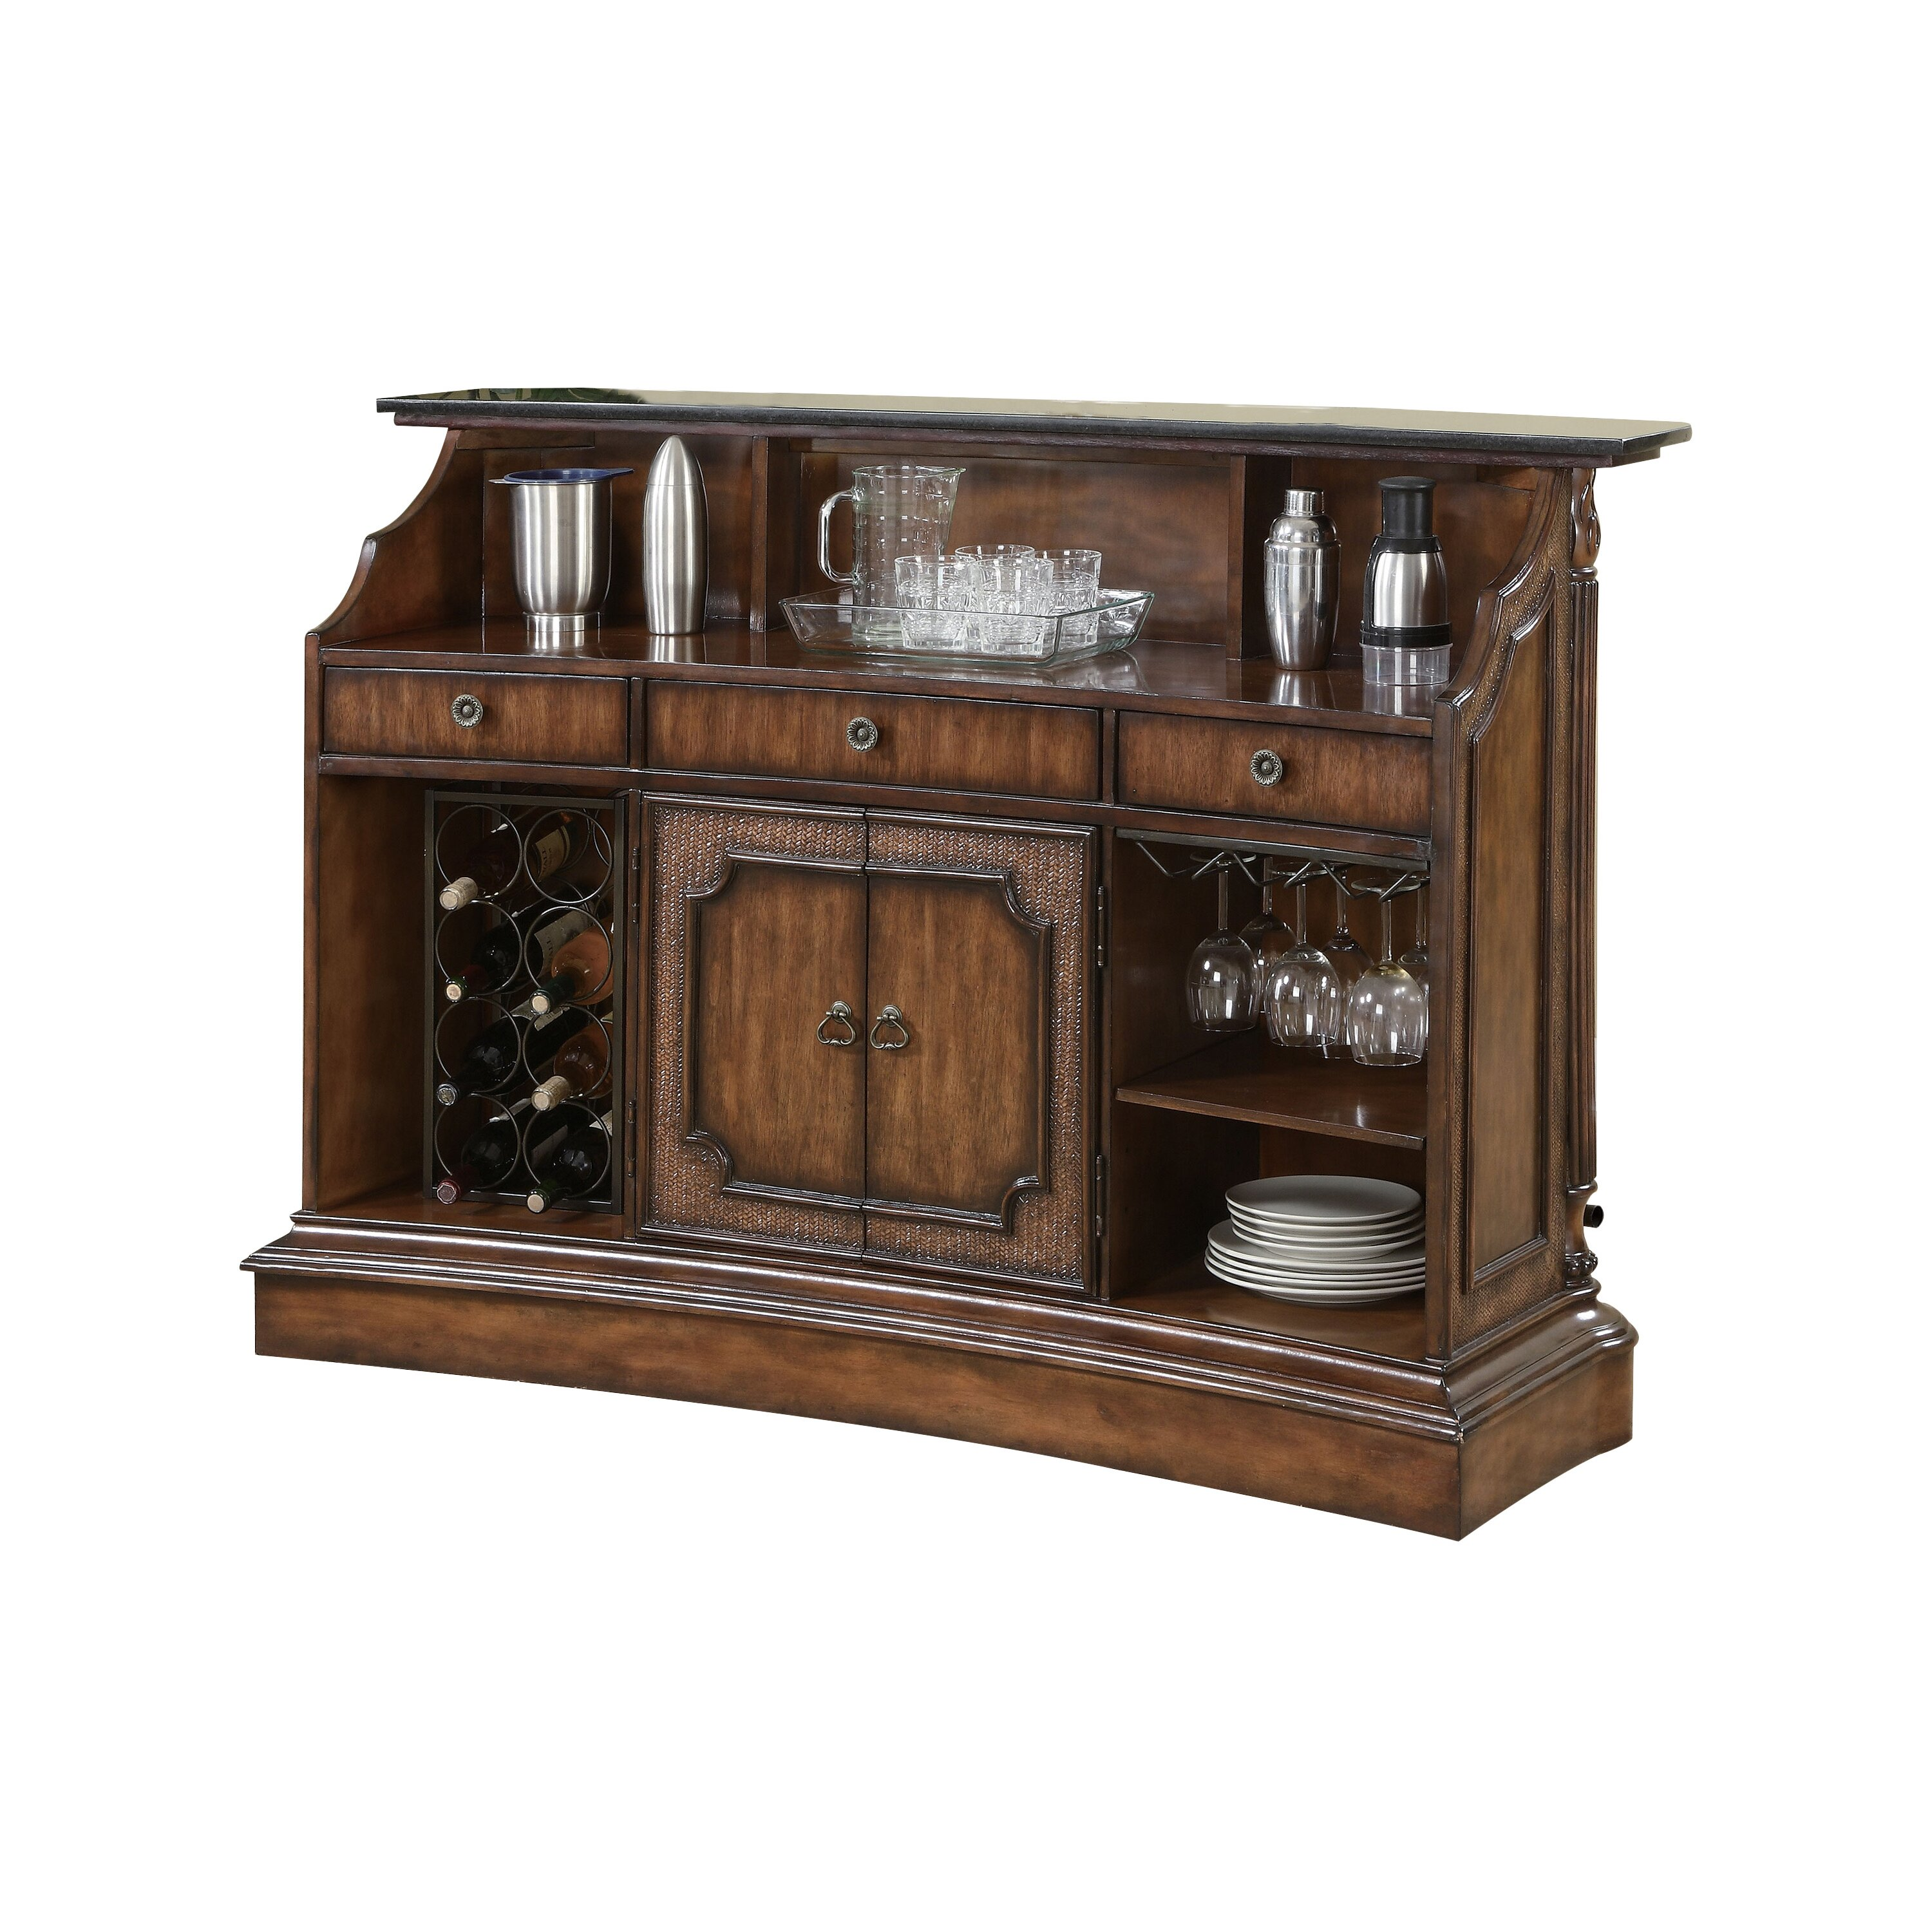 Darby Home Co Ansel Bar With Wine Storage Reviews